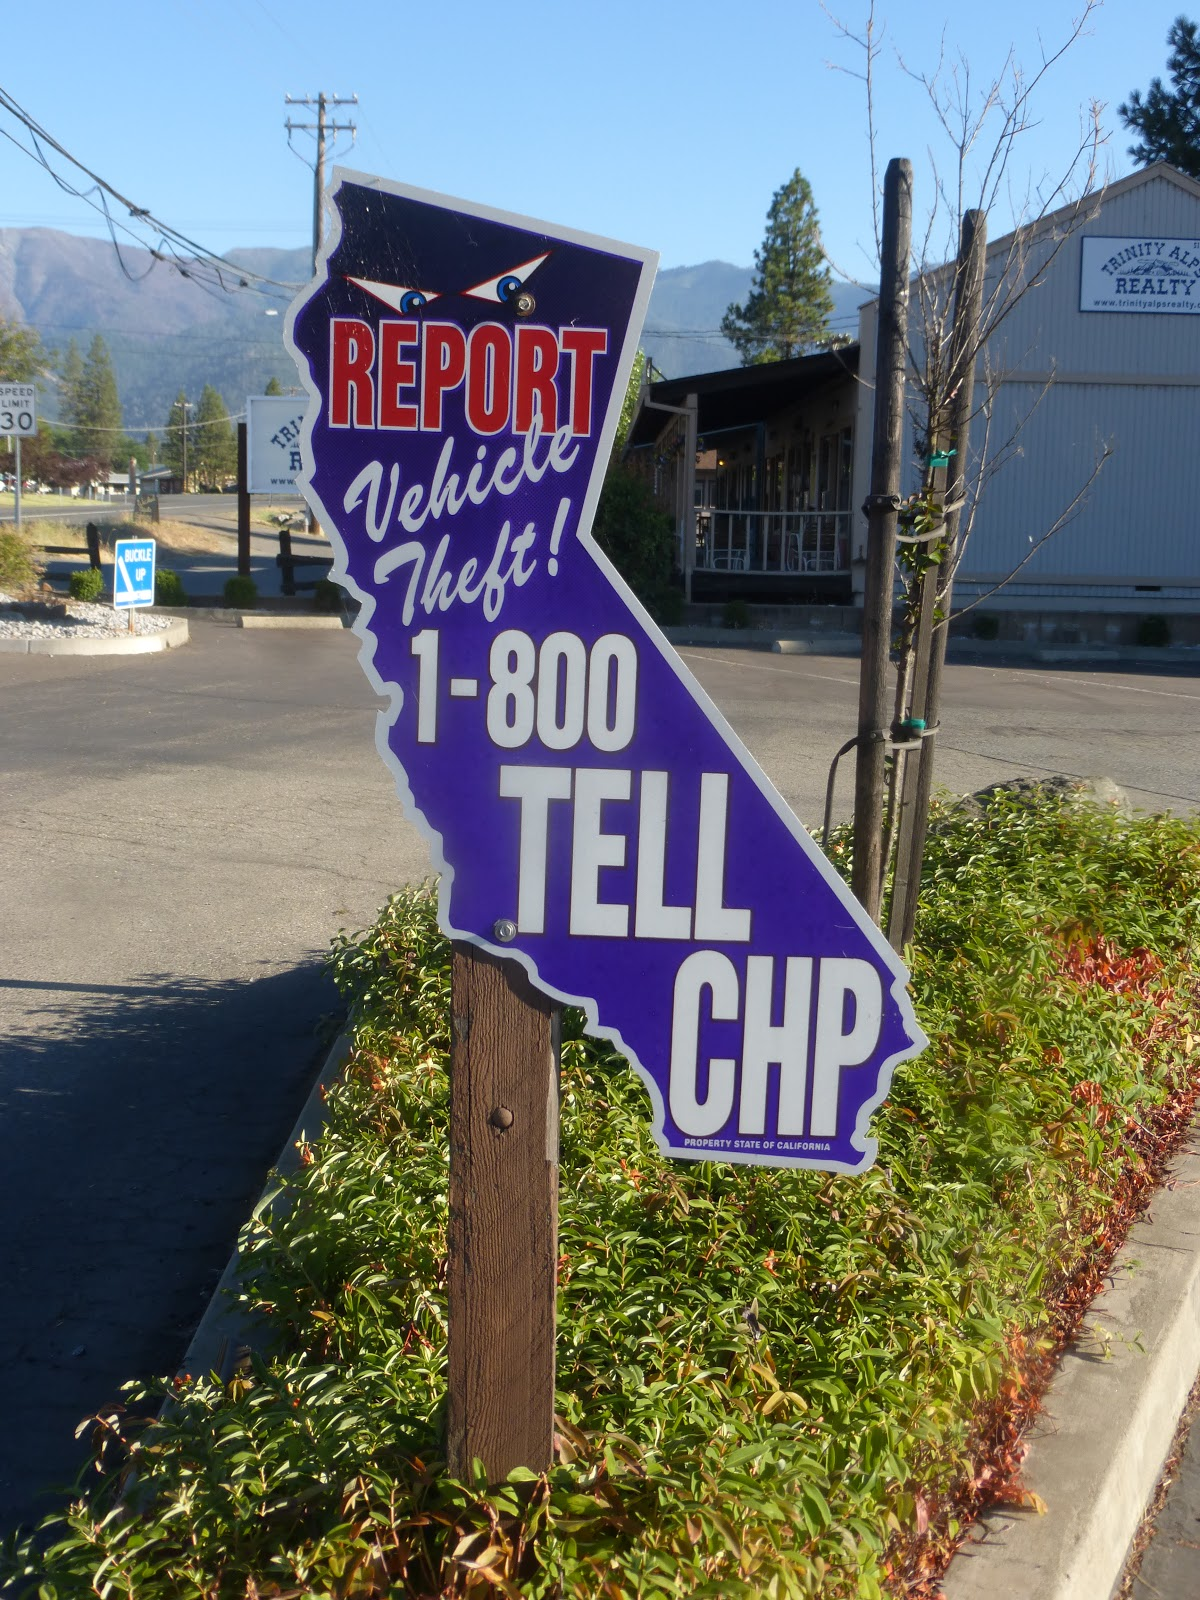 weaverville california trinity county chp headquarters is adjacent to the dept of motor vehicles perhaps this sign responds to the reality that rural